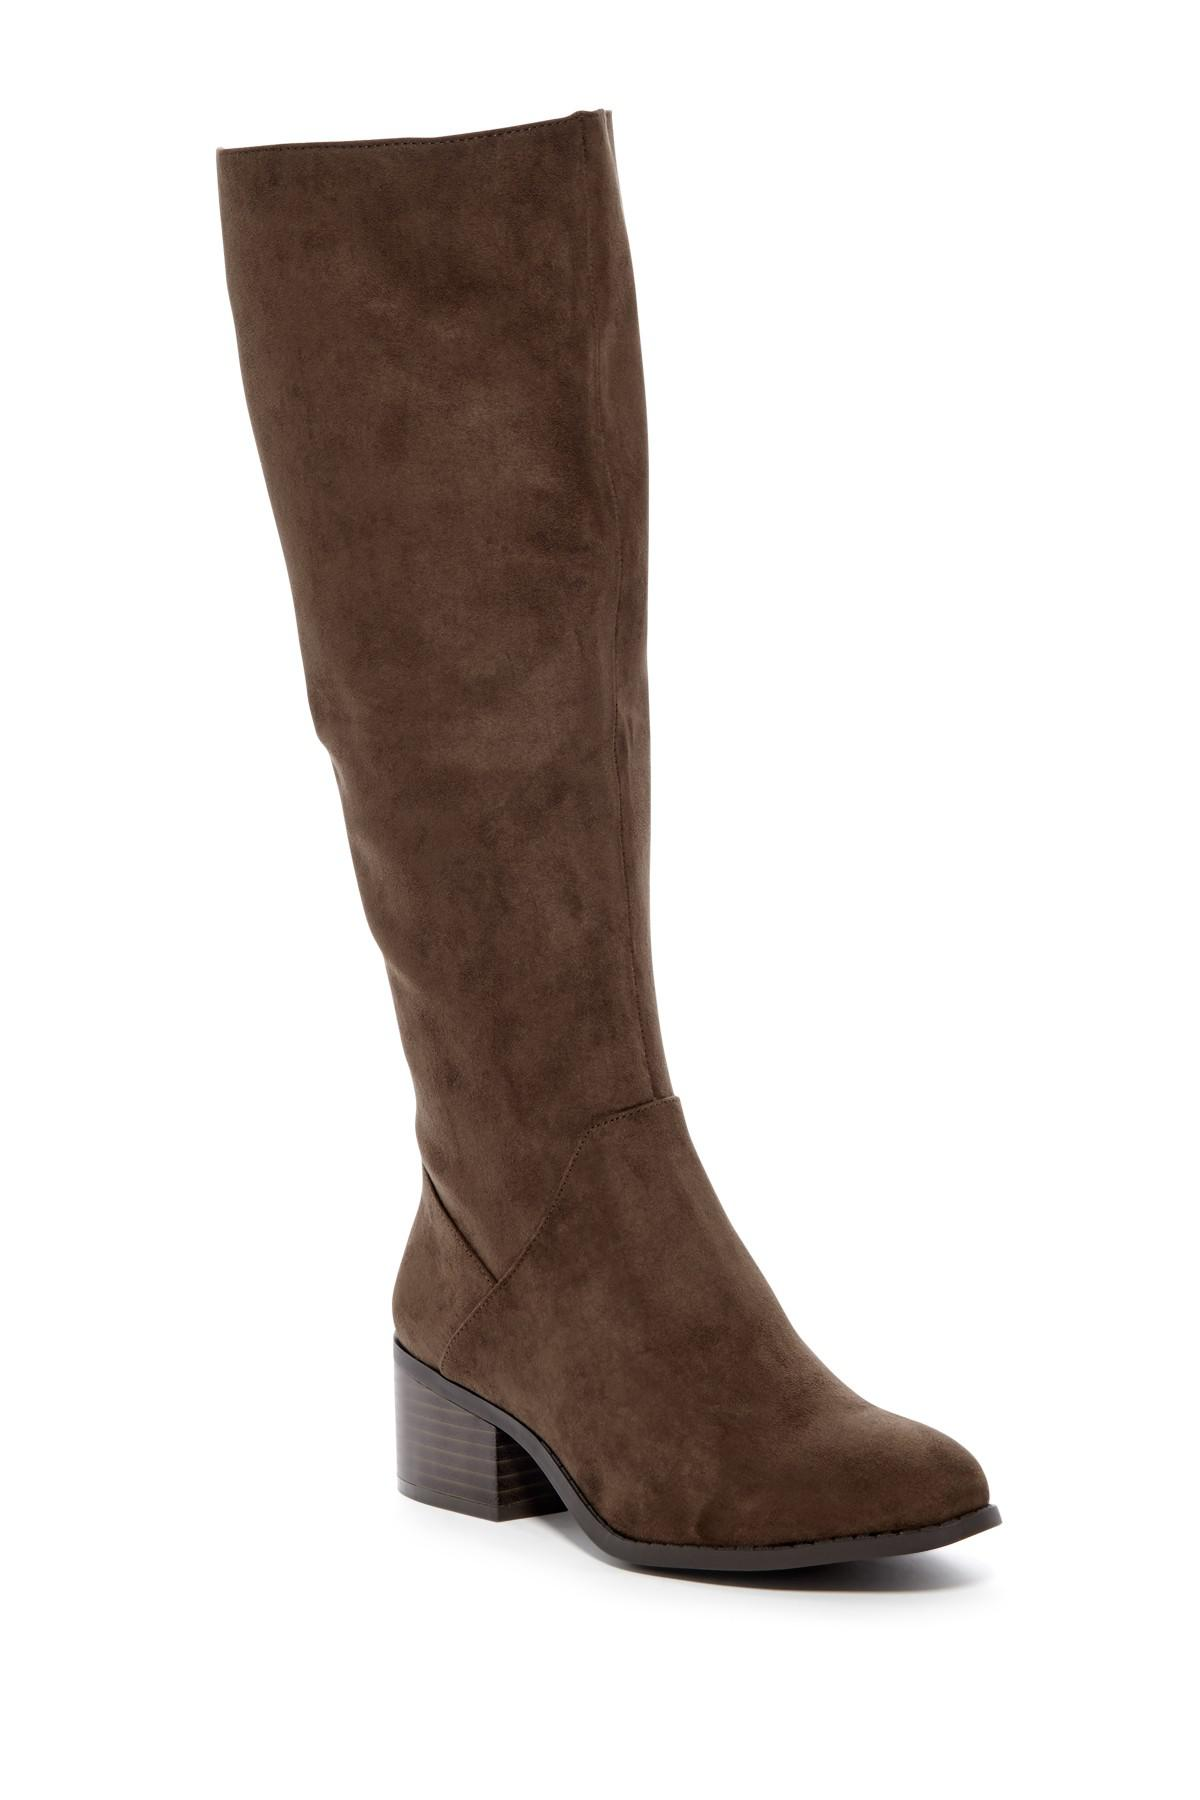 05f906a4732 Lyst - Madden Girl Jagg Tall Boot in Brown